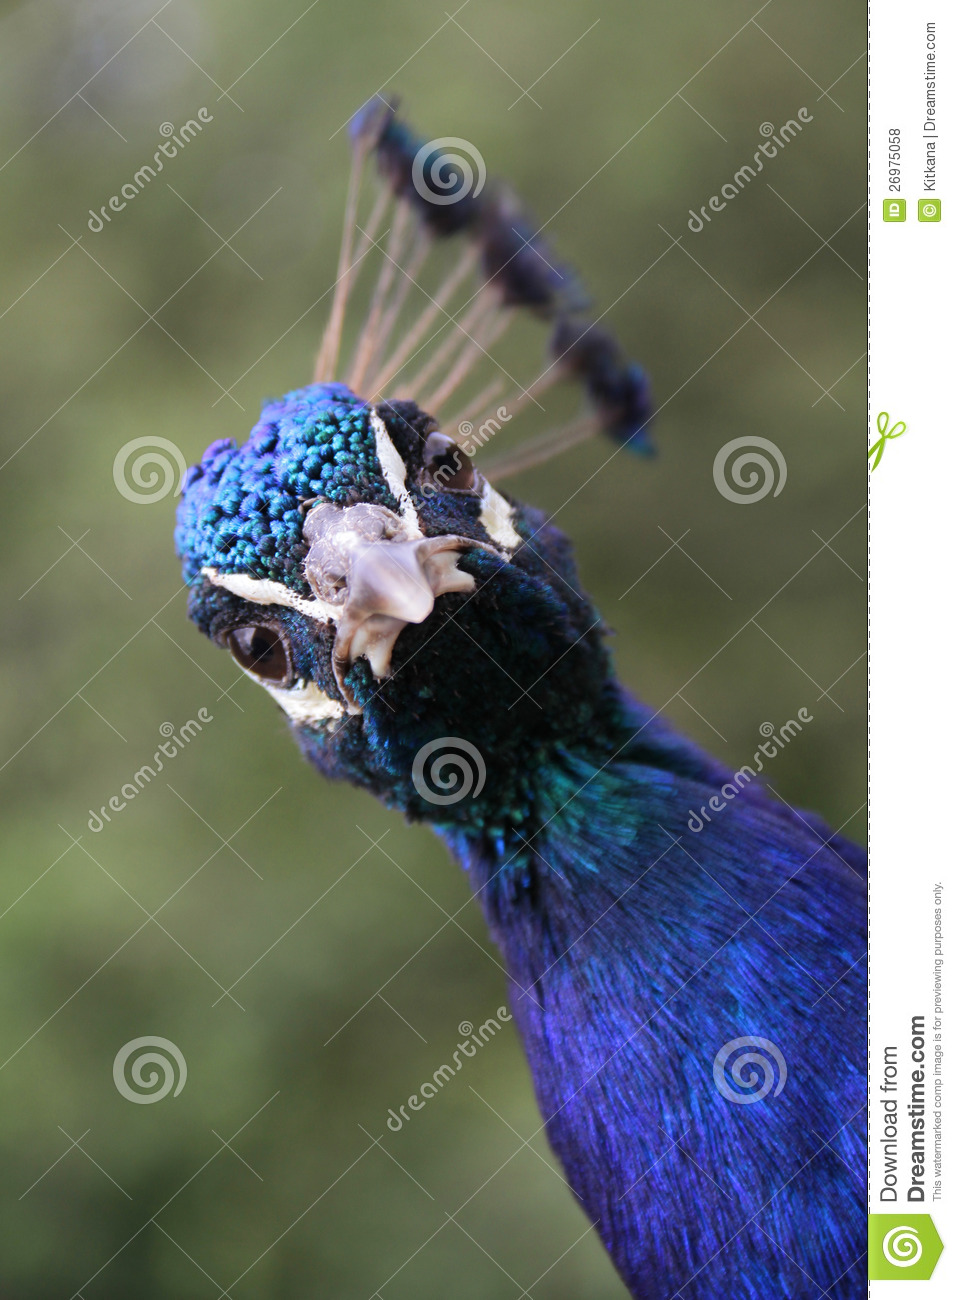 funny peacock portrait royalty free stock photos   image 26975058